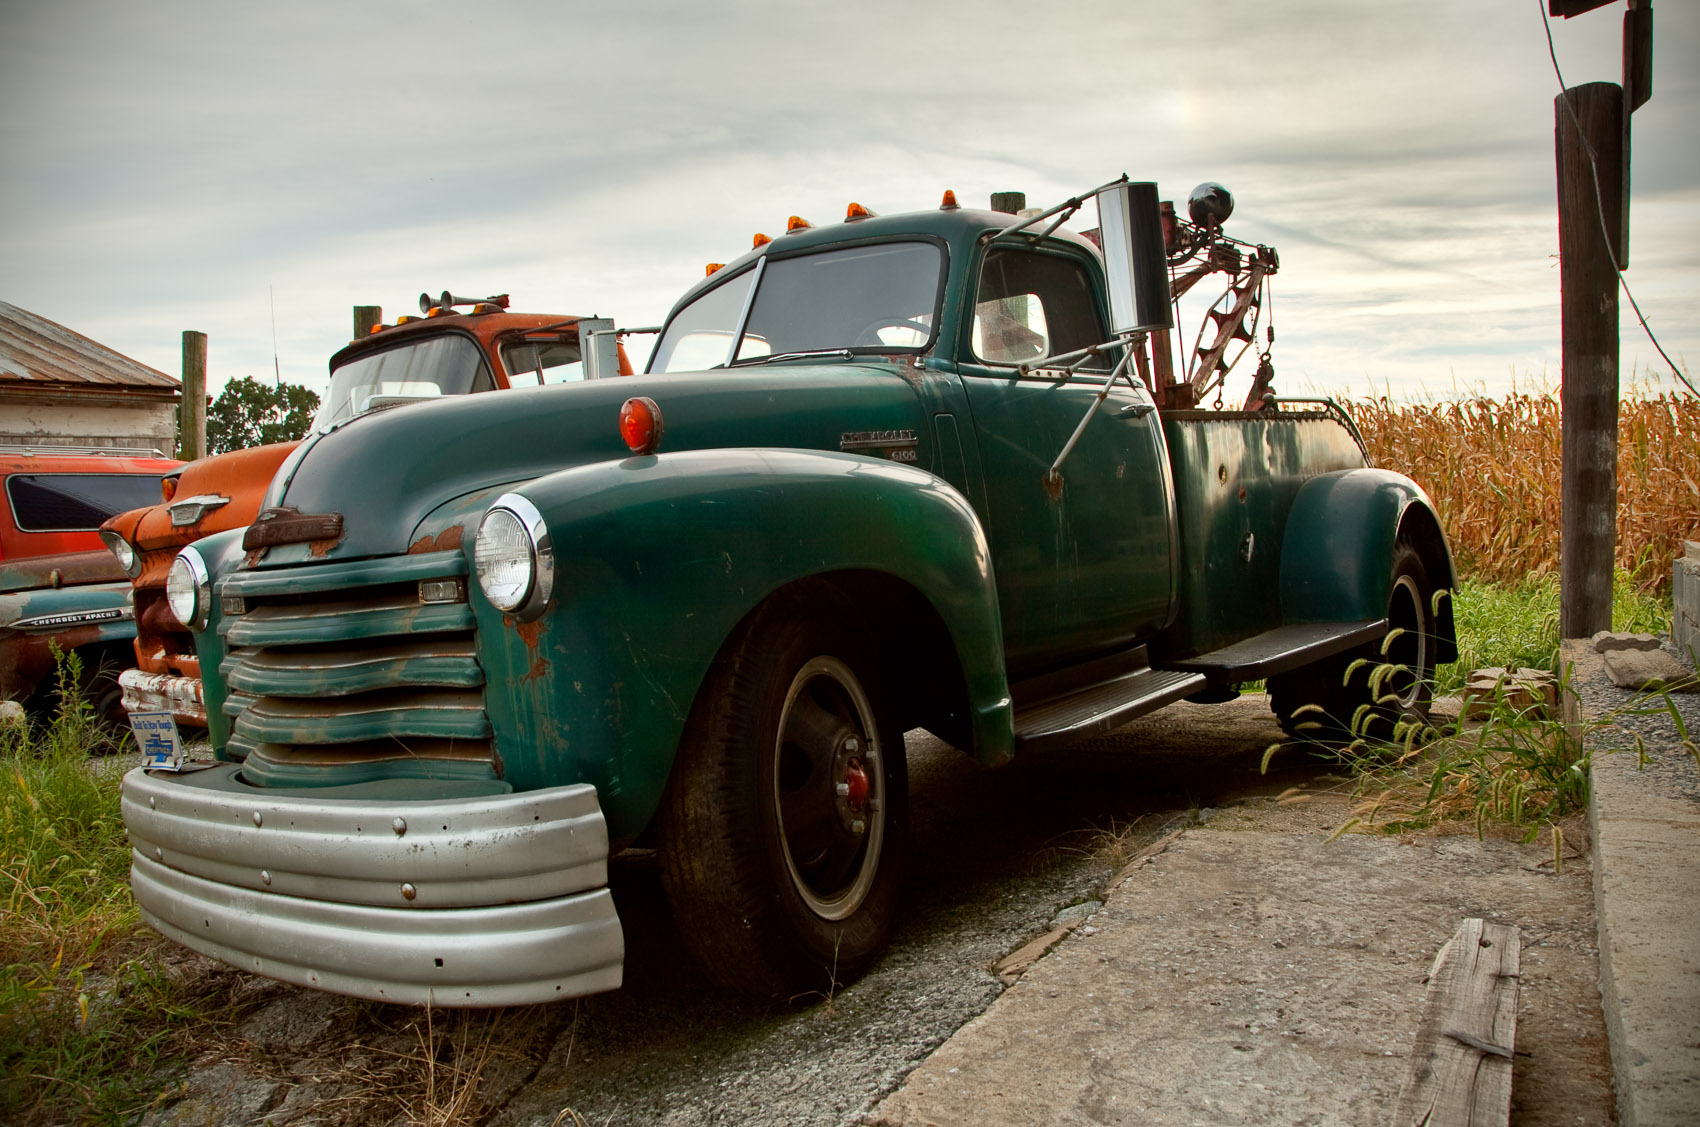 1950 Tow Truck >> Early 1950's Chevrolet 6100 Tow Truck | J. Eldon Zimmerman Photography | Lancaster, PA ...